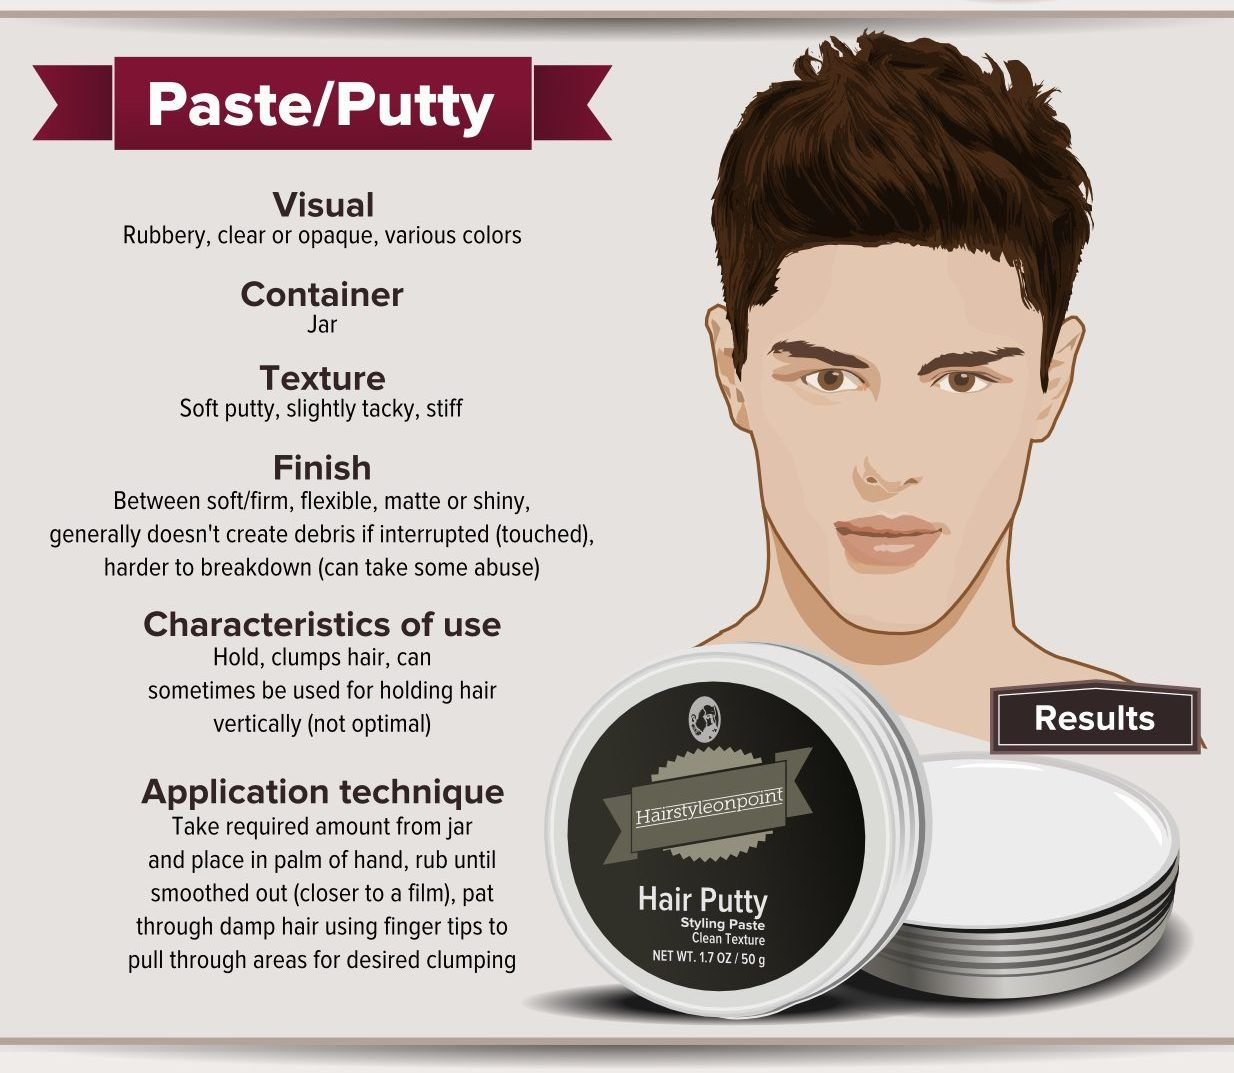 Simple Guide To Men S Hairstyling Products And How To Use Them Infographic In 2020 Mens Hairstyles Best Hairstyles For Older Men Mens Hairstyles Short